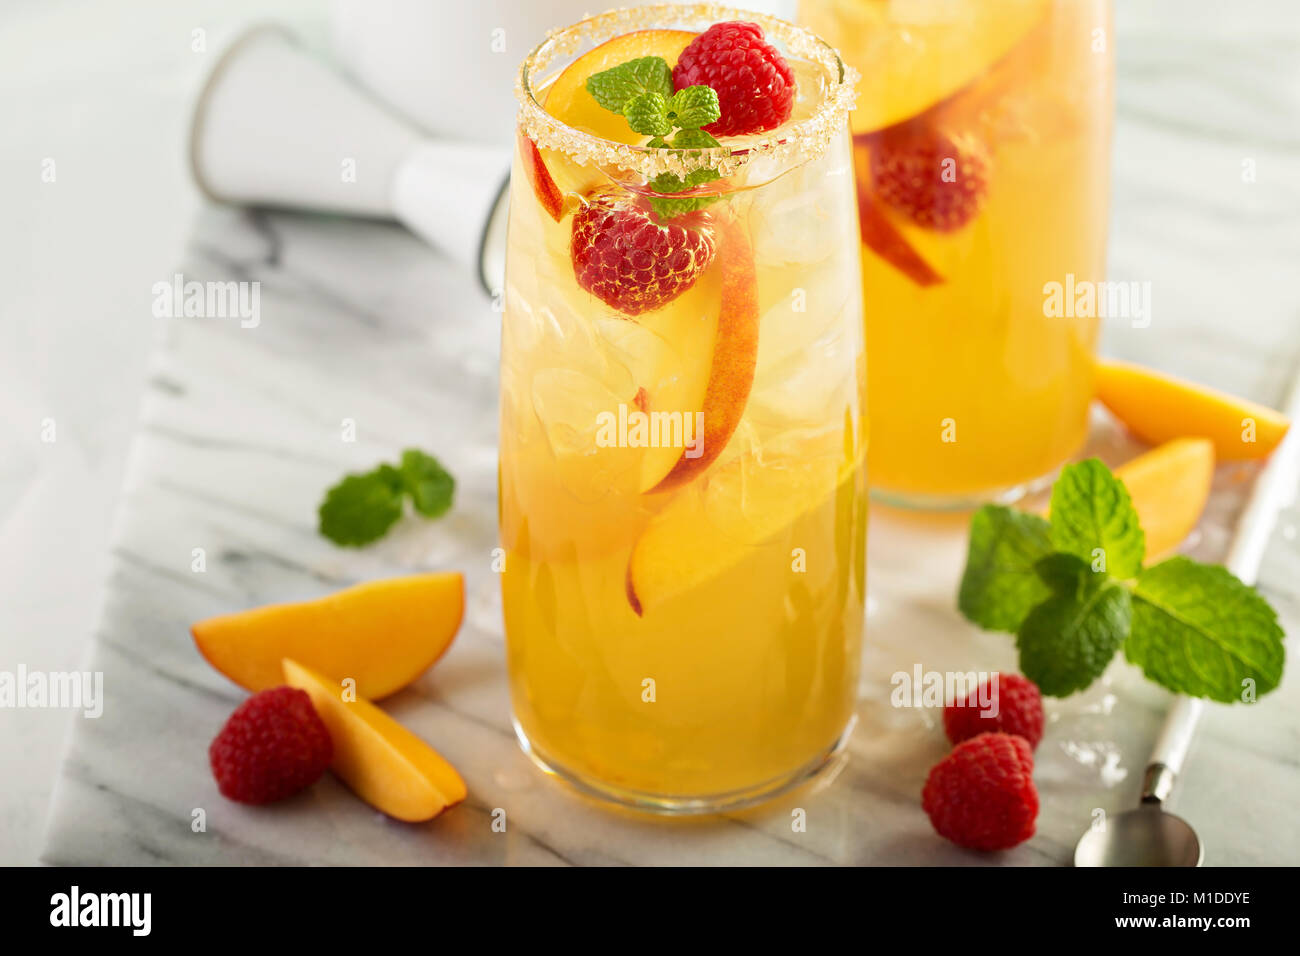 Colorful refreshing cold summer drink with peaches - Stock Image